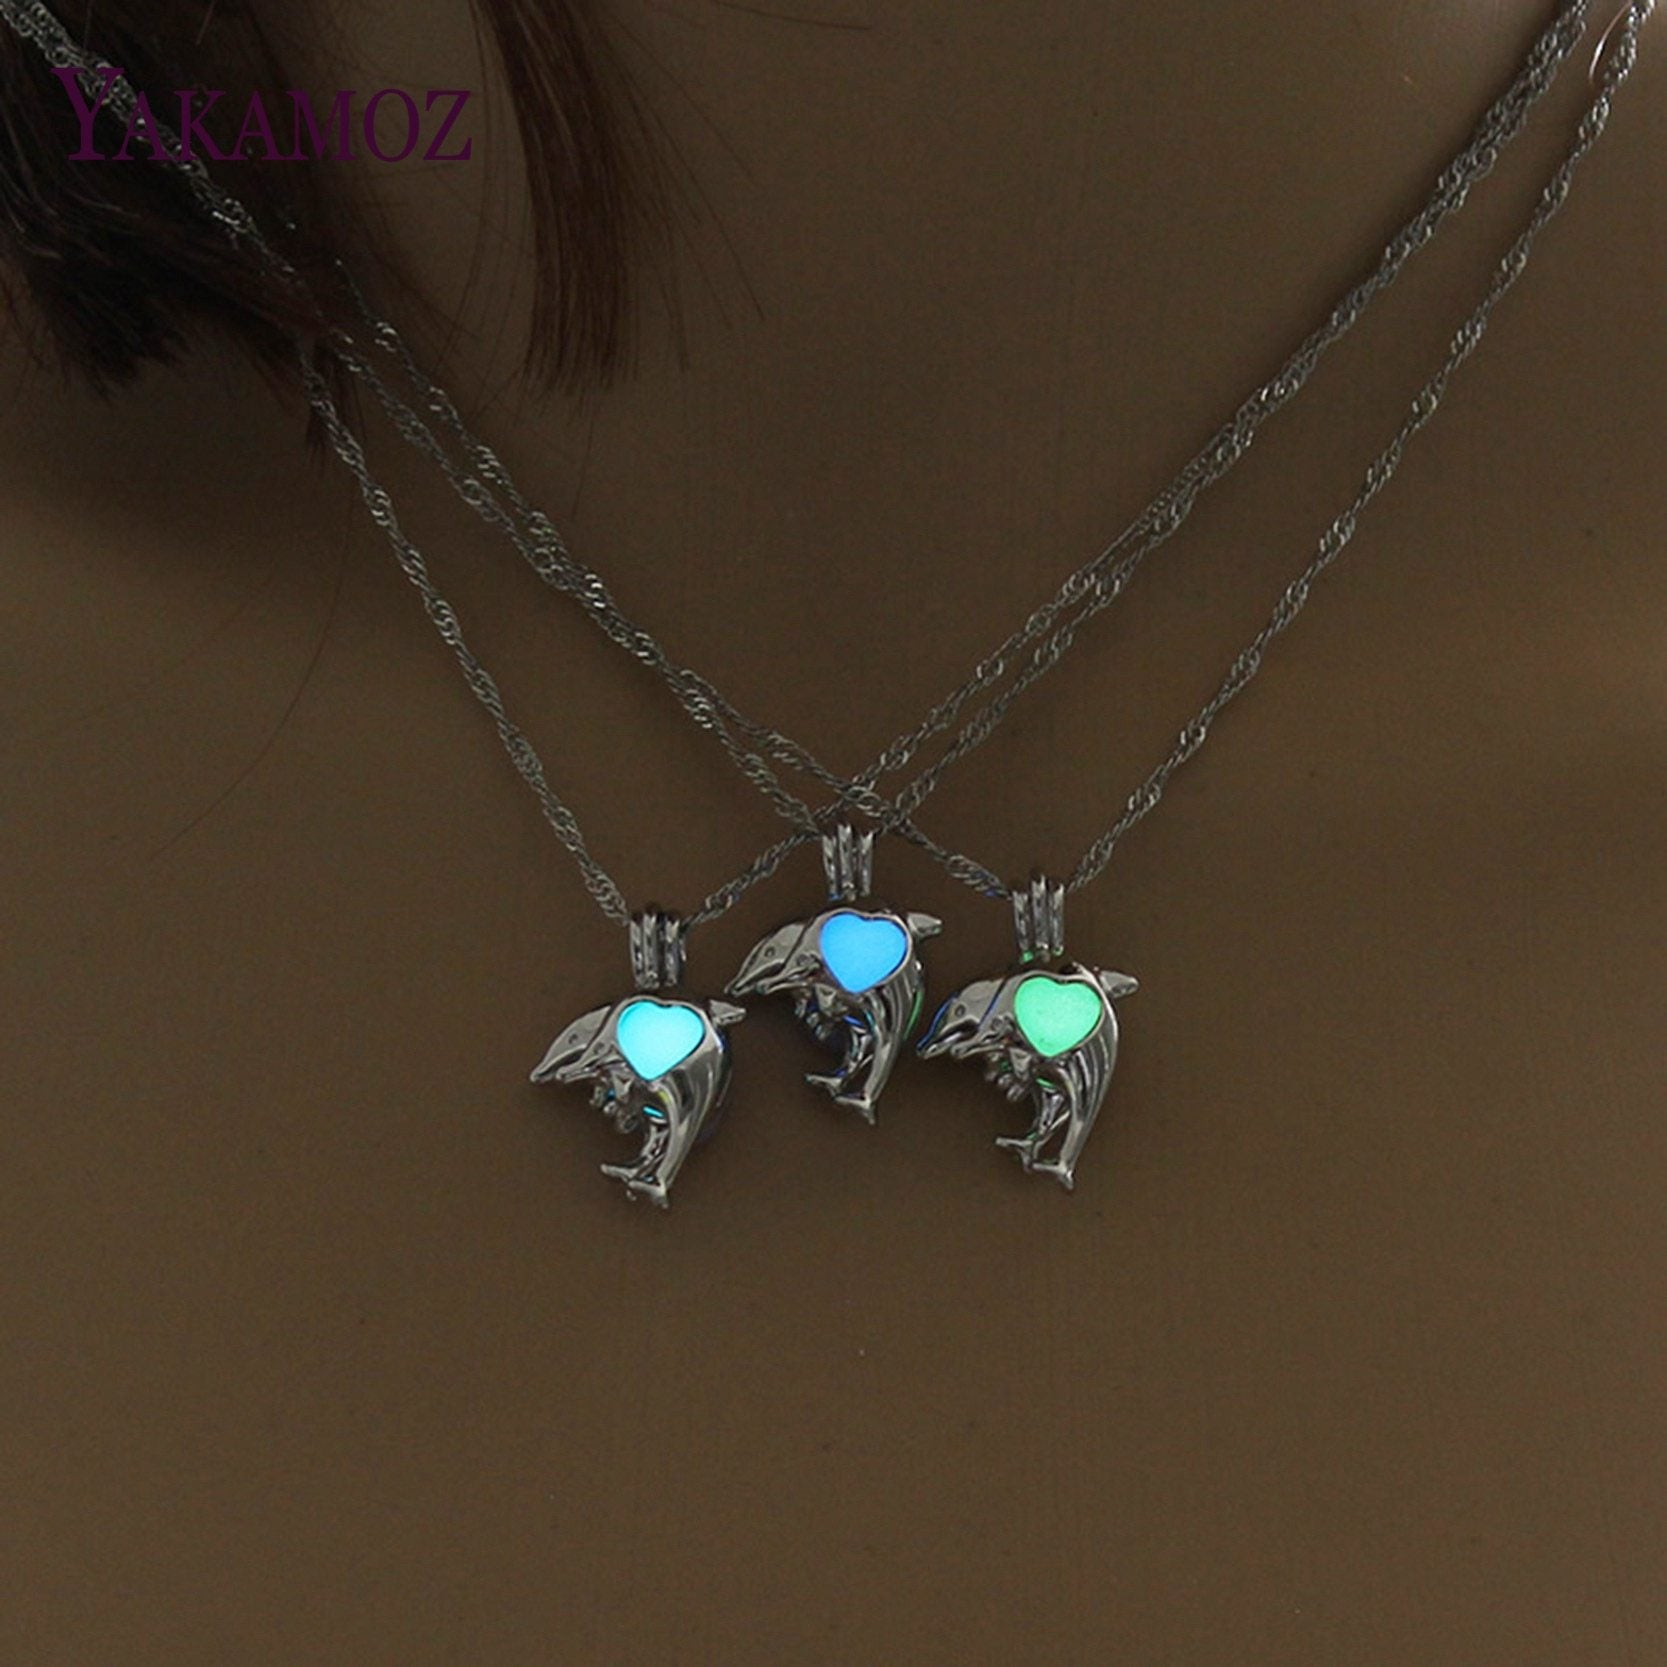 Silver Color Chain Dolphin Necklace Glow in the Dark Luminous Jewelry Charmintothea-intothea